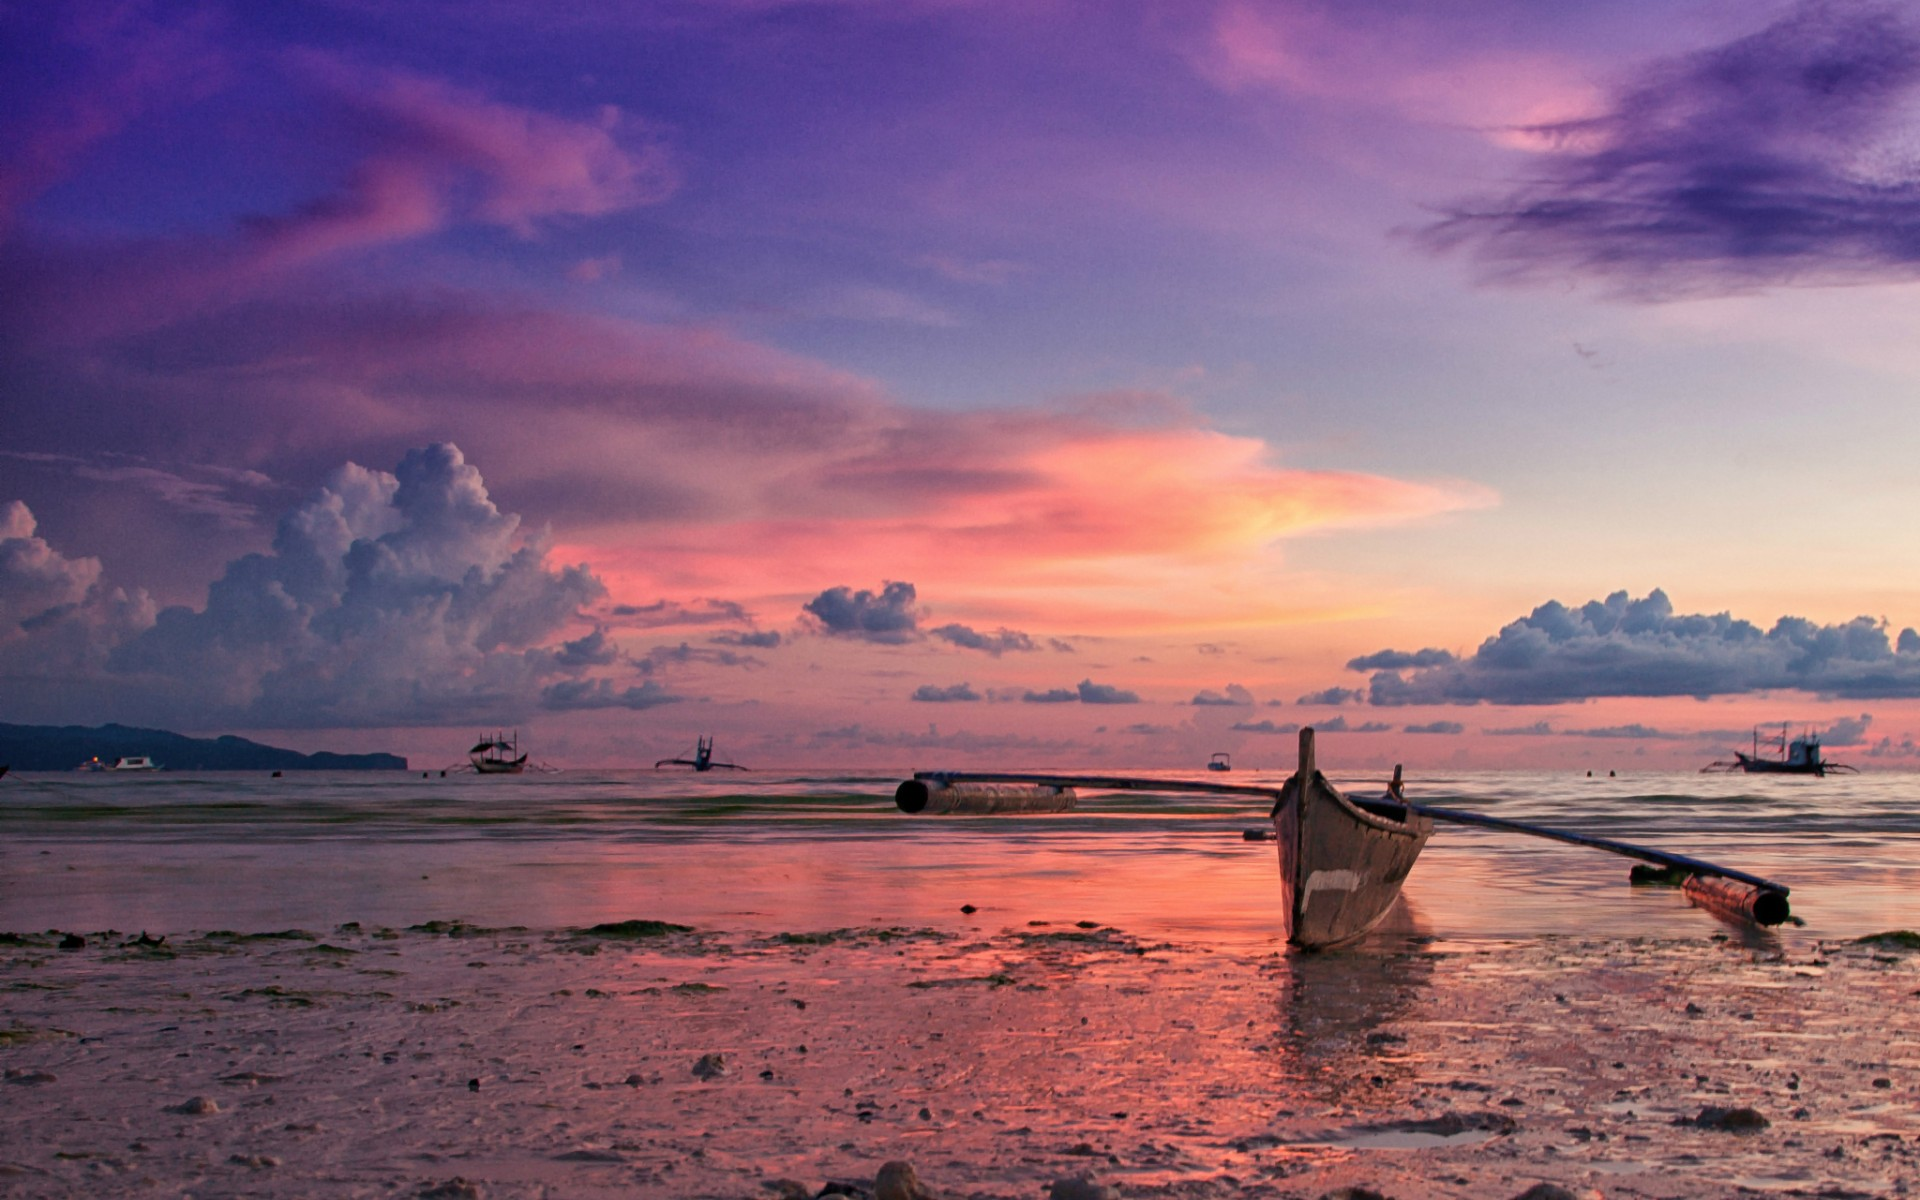 Philippines island ocean beach boat evening sunset sky clouds beaches 1920x1200